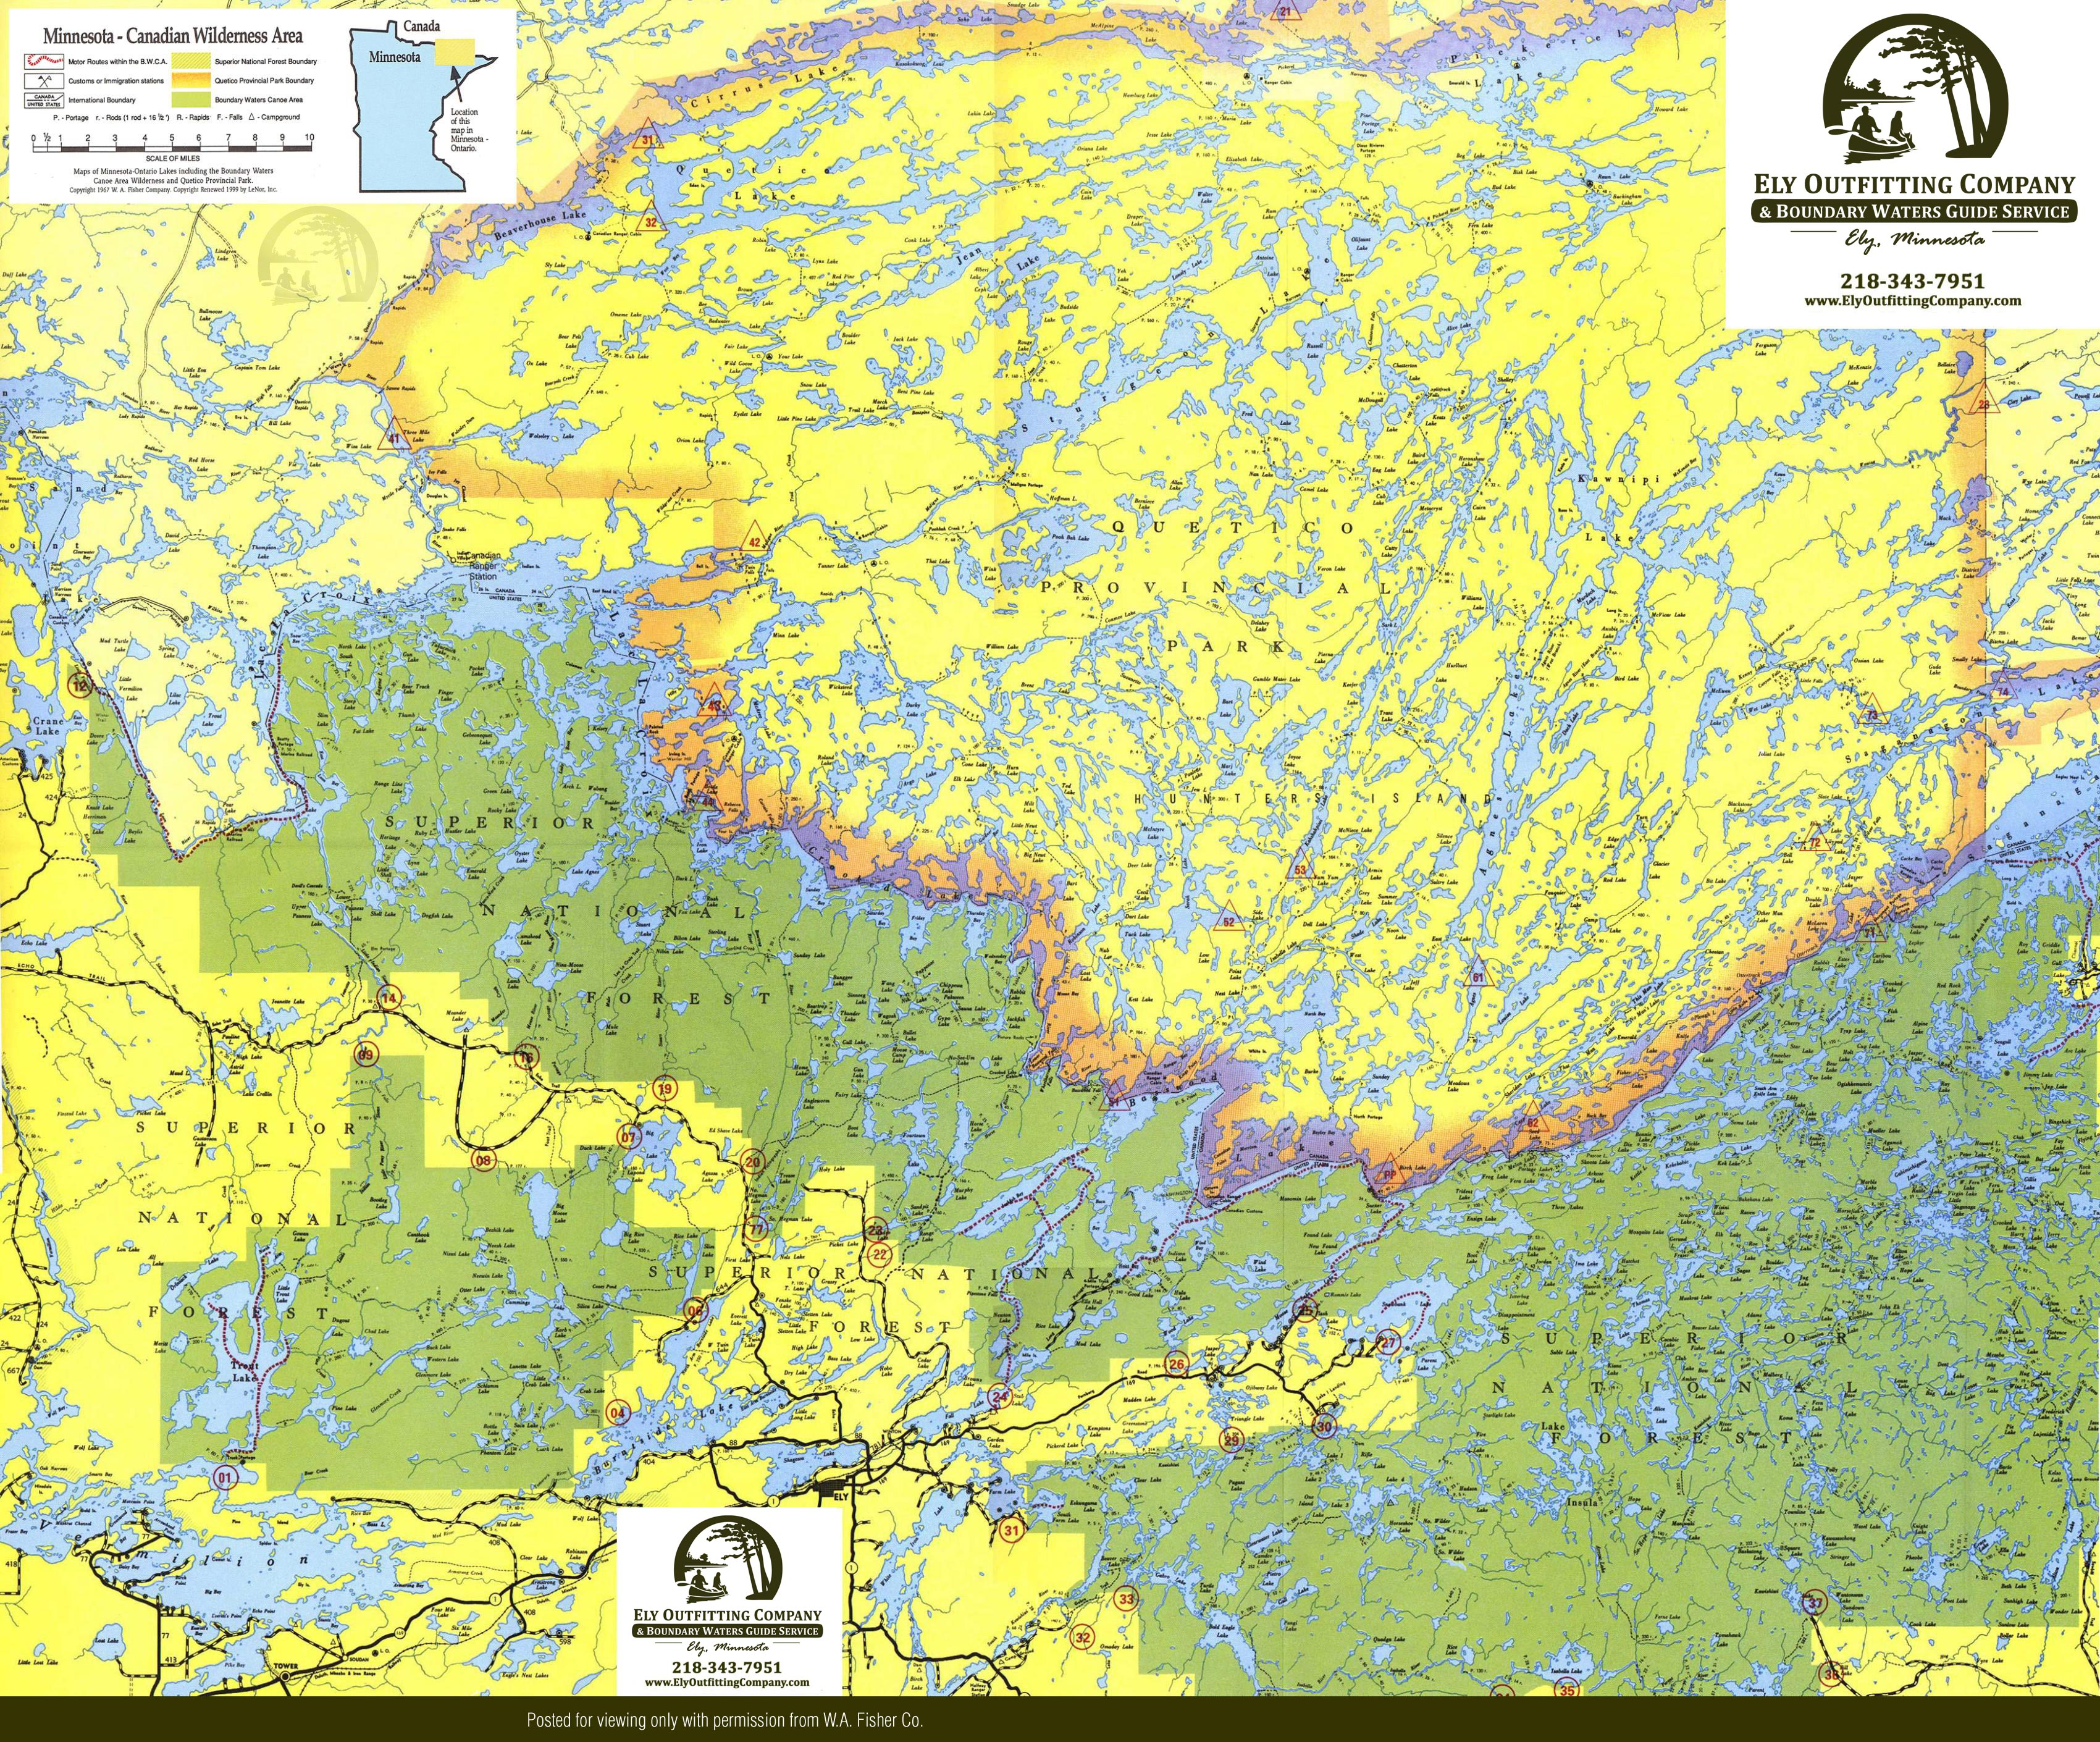 Boundary Waters Canoe Area Map | BWCA Route Planning Map